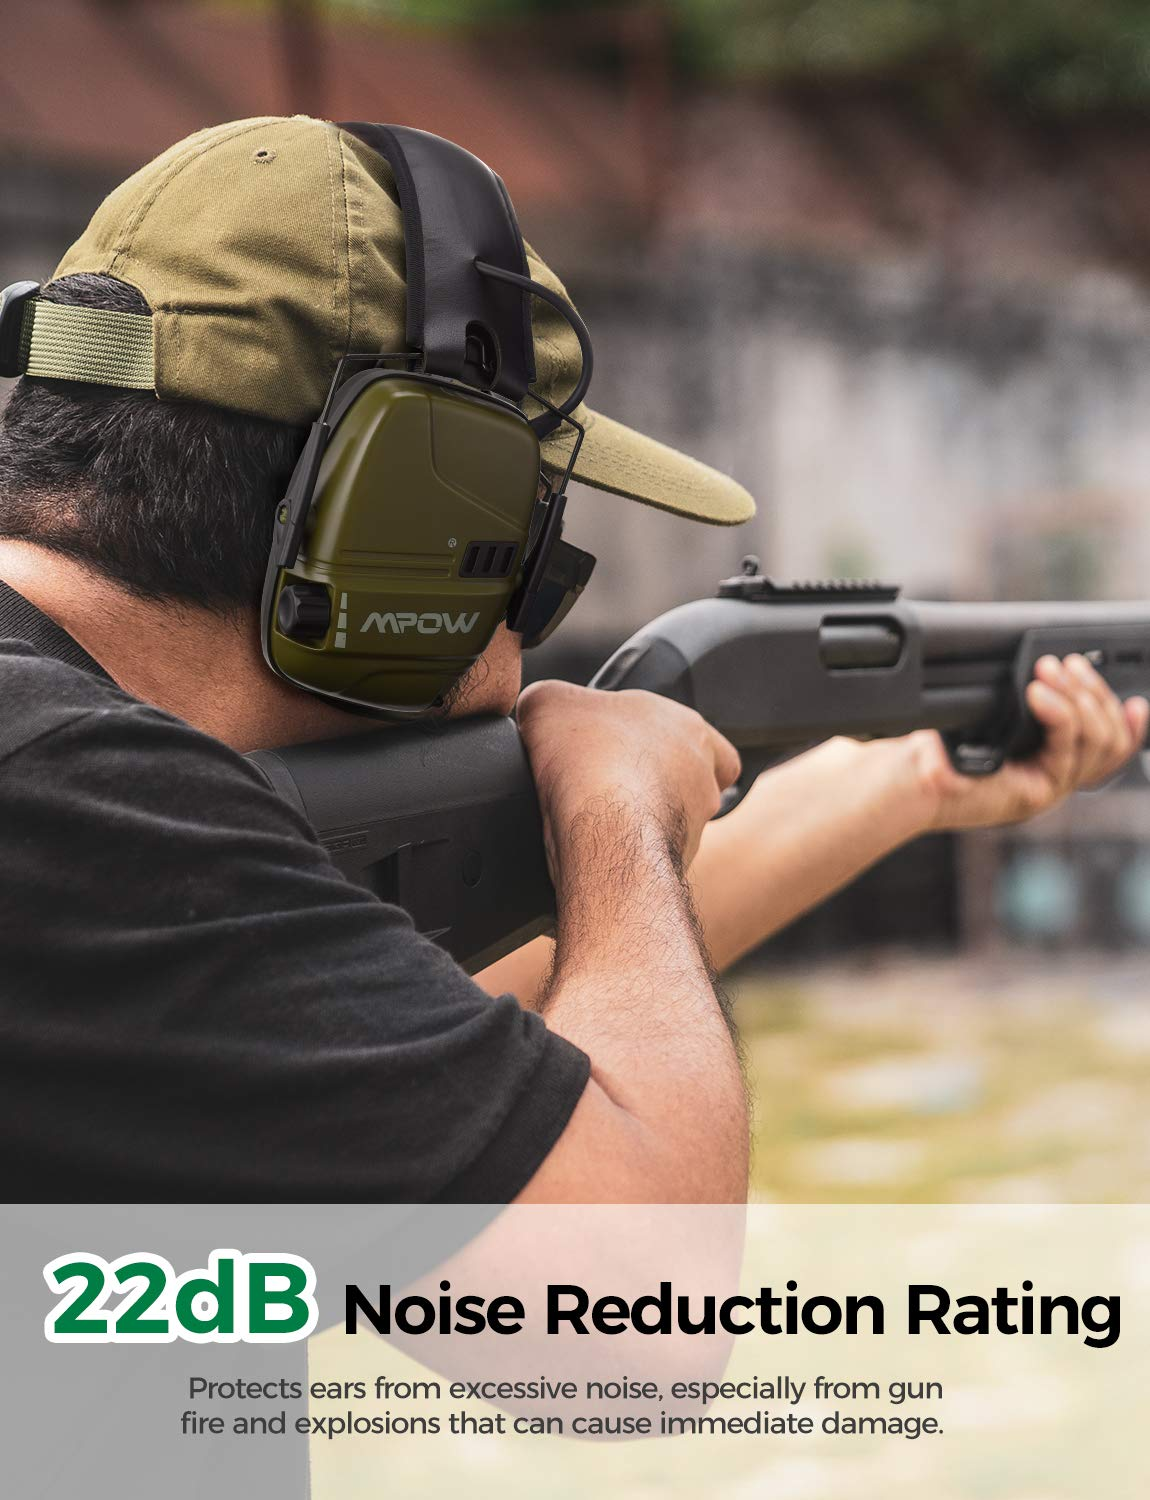 Mpow 094 Electronic Shooting Ear Muffs, Rechargeable SNR 26dB Active Noise Reduction Muffs, Stereo Sound Amplification with Dual Mic, Ear Protection for Shooting Hunting Season, Mowing, Woodworking by Mpow (Image #3)